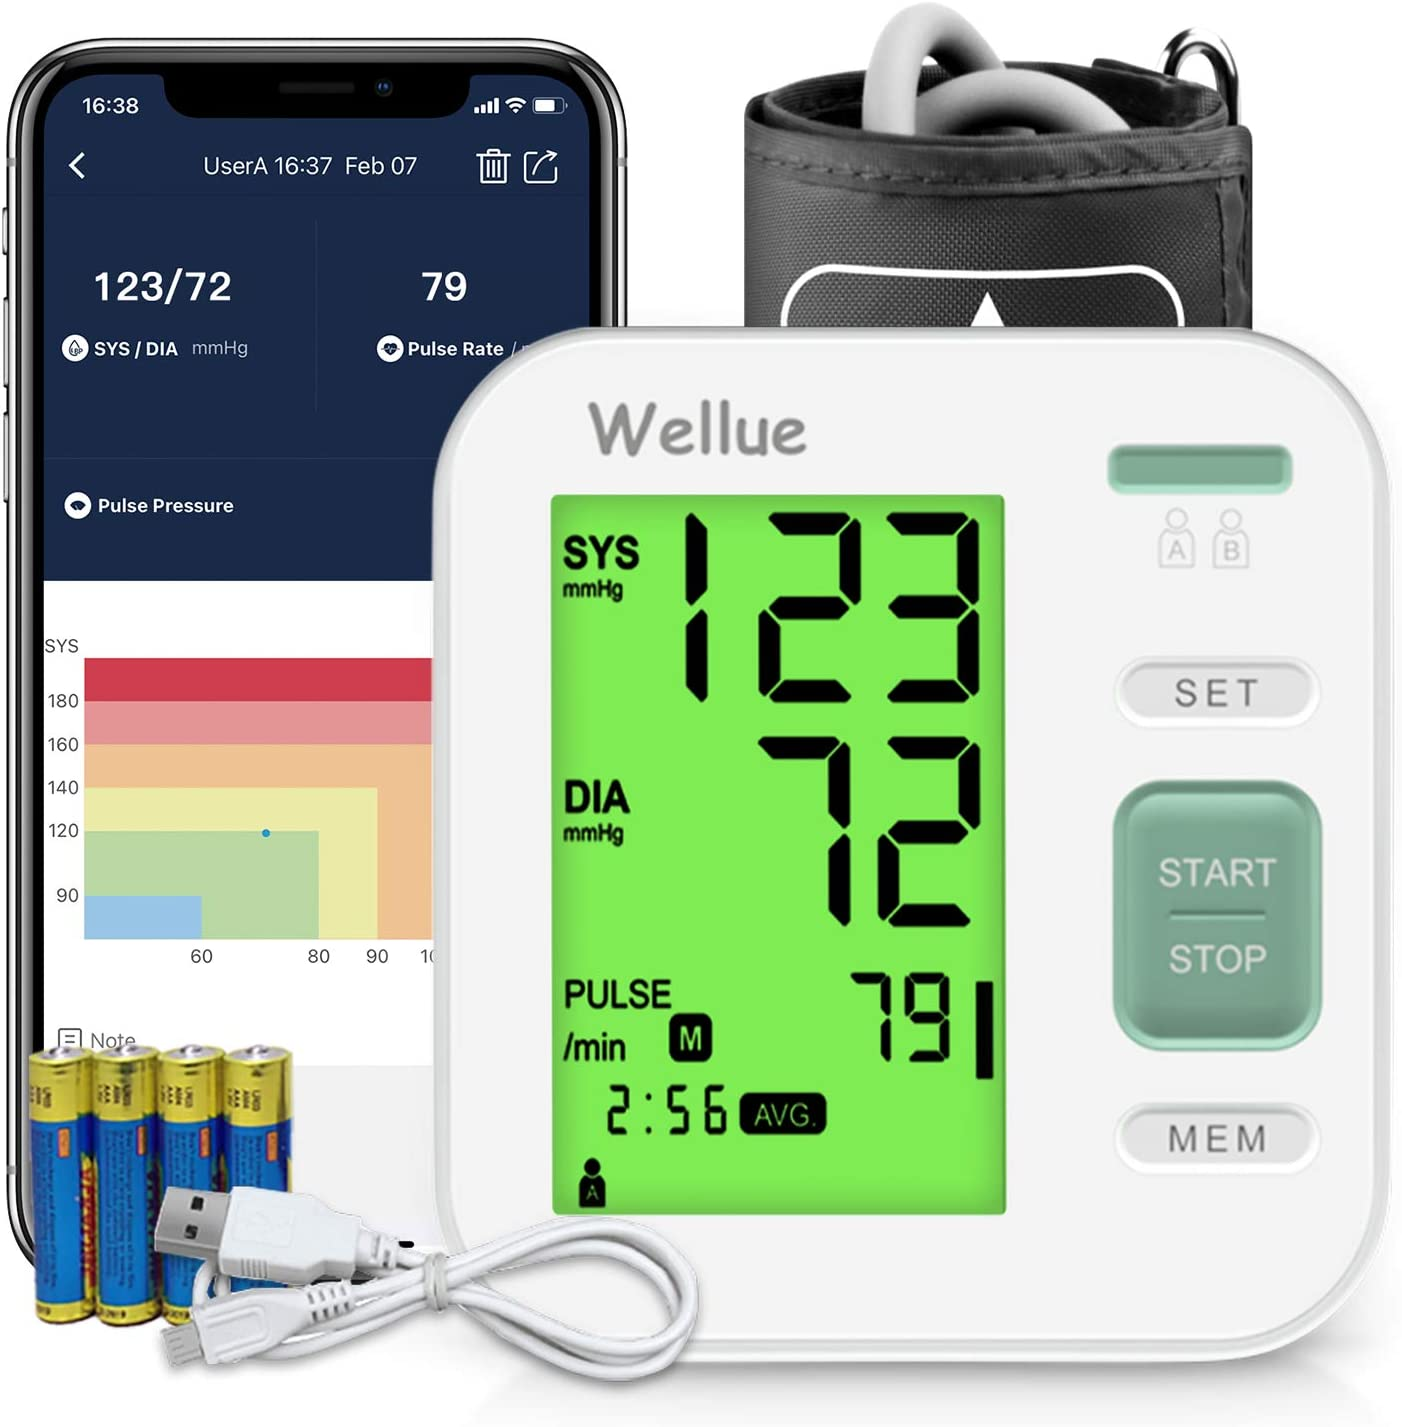 Wellue Blood Pressure Monitor Upper Arm for Home Use - Automatic Blood Pressure Machine, Unlimited Memories and Sharing in APP, Irregular Heartbeat Detection - Blood Pressure Monitor Cuff Kit